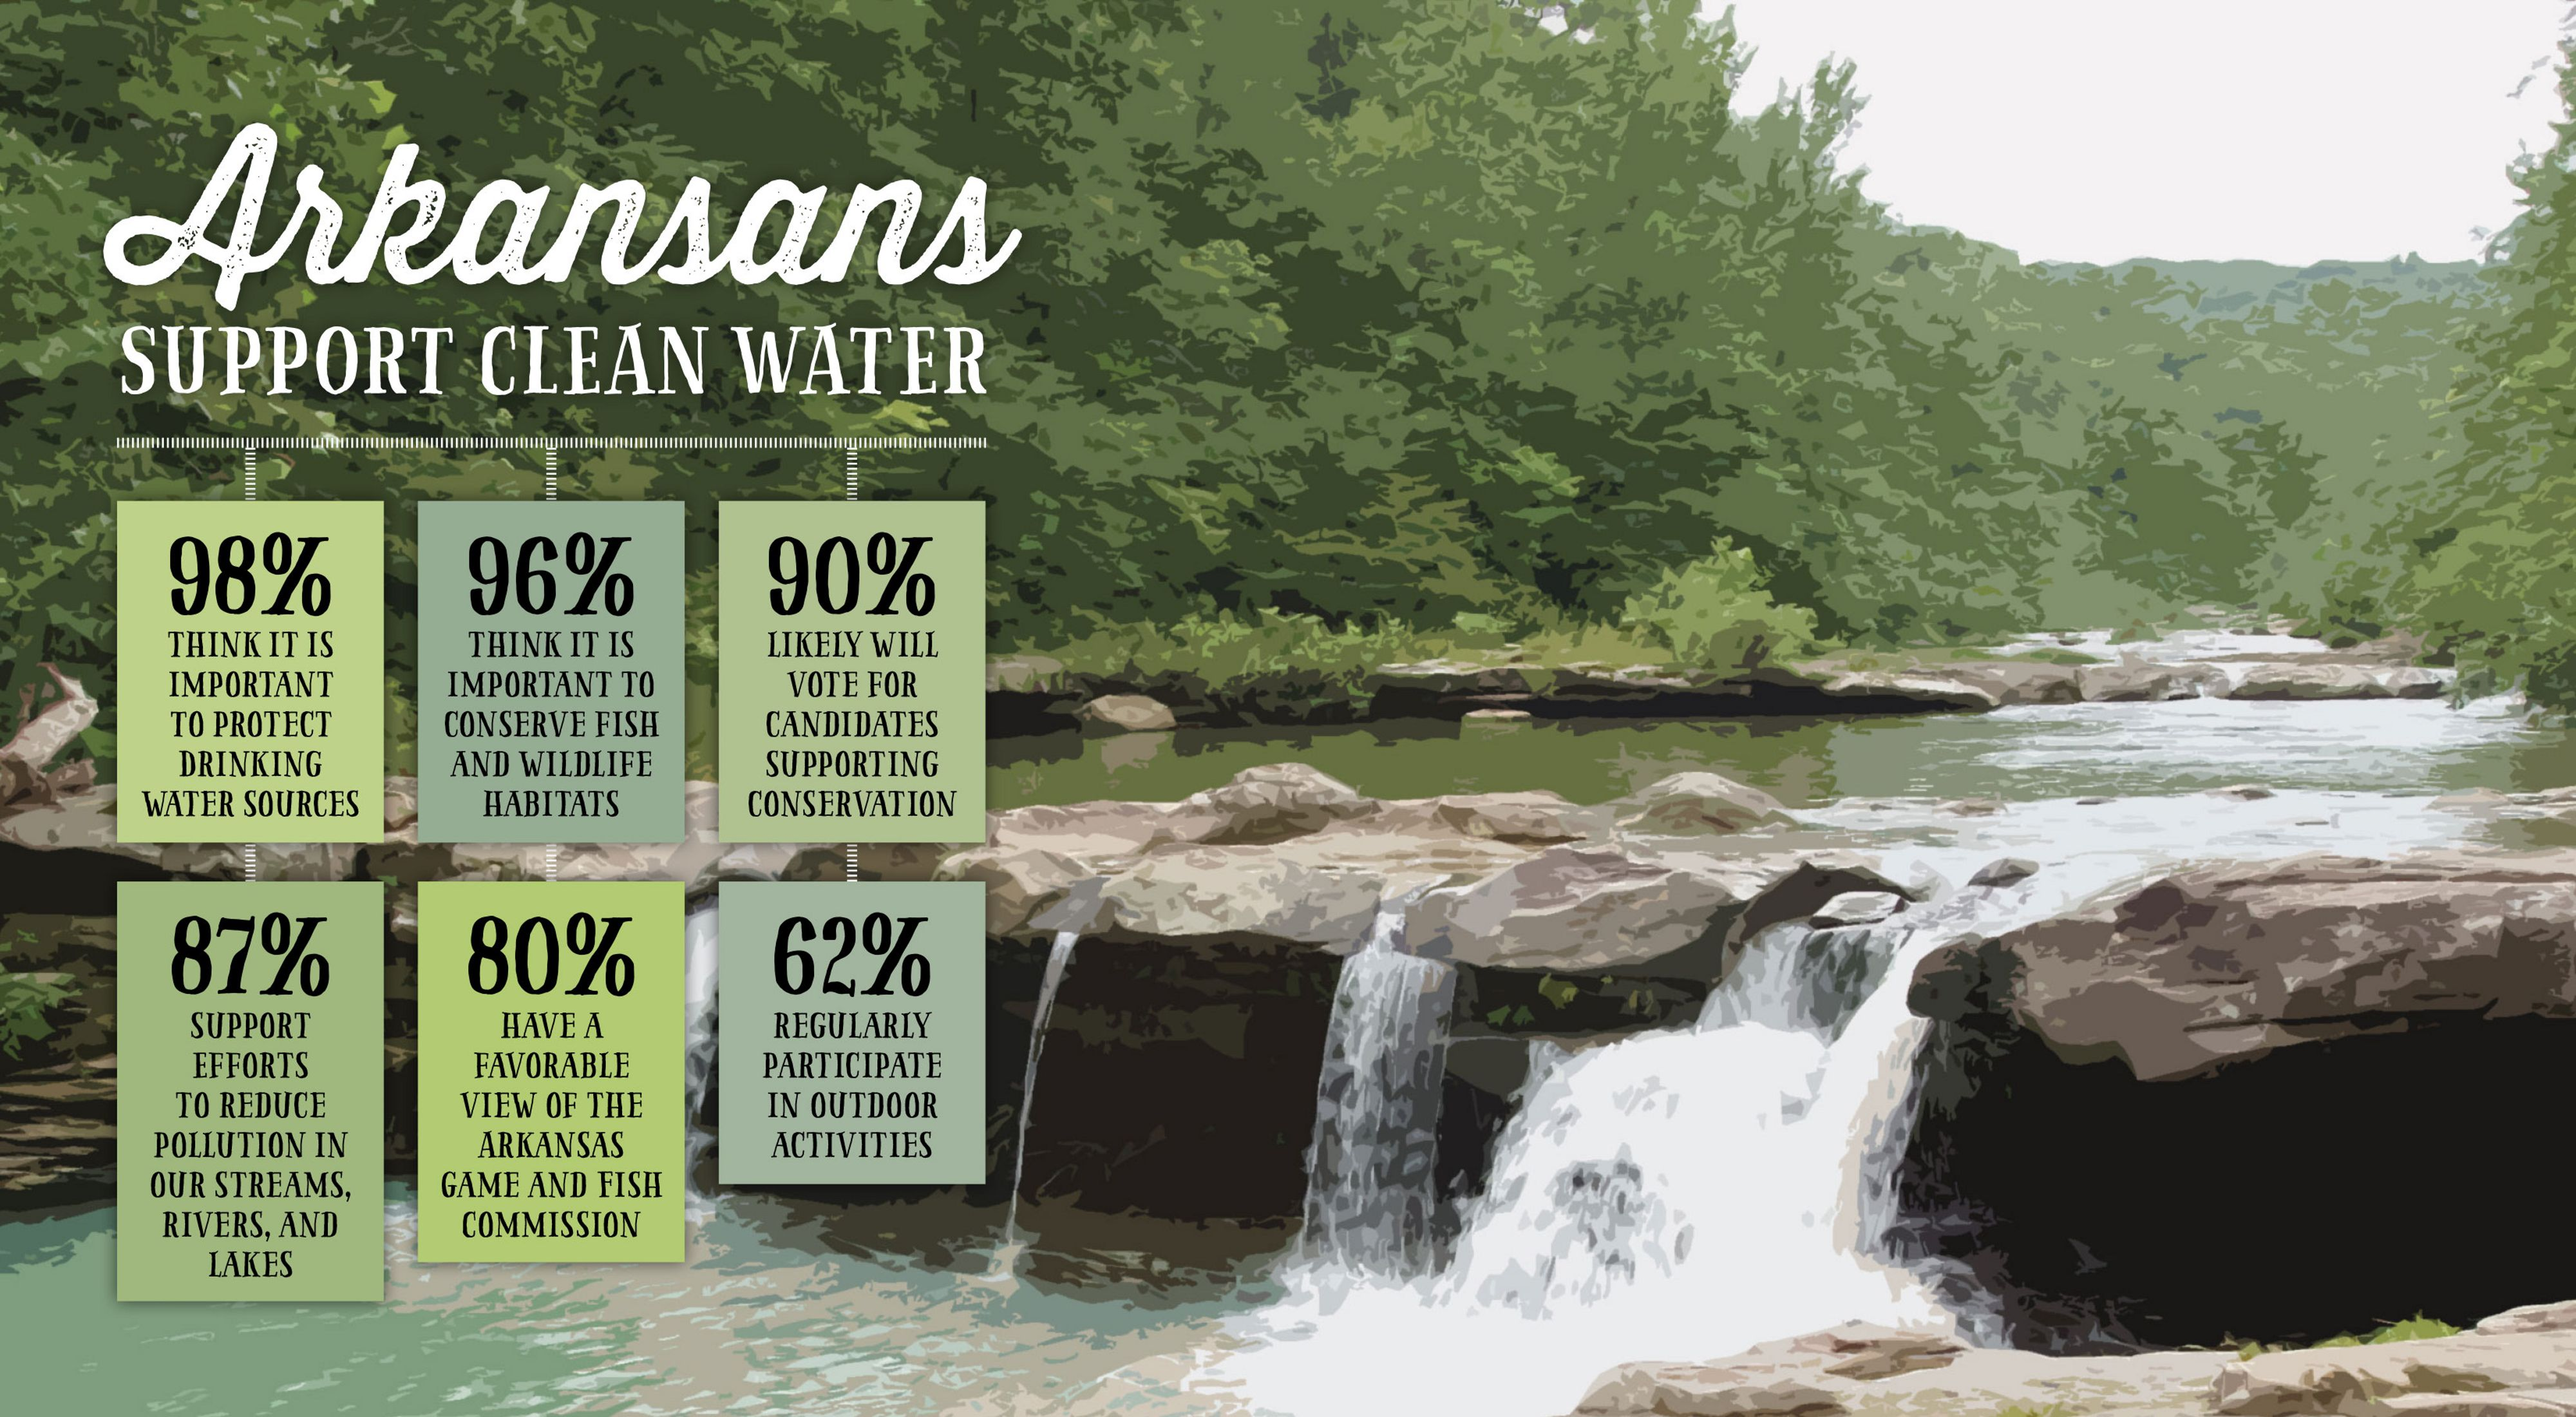 Statewide poll shows 98% support for protection of drinking water sources, 80% support for Arkansas Game and Fish Commission.